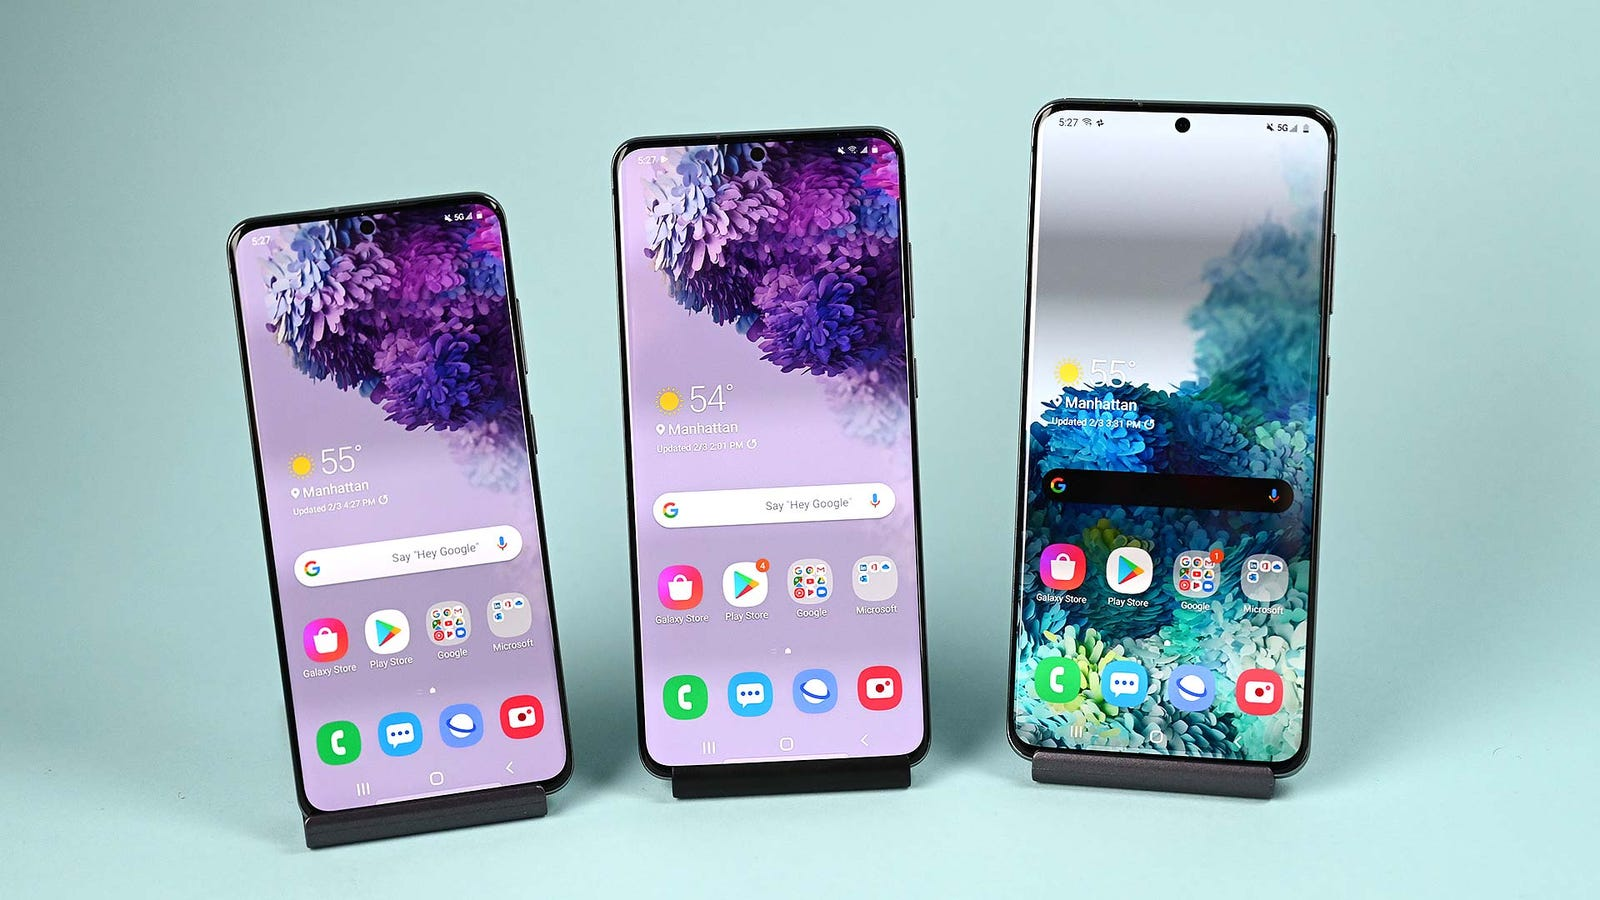 With 120Hz Screens, Mobile Games Are Going To Get A Lot Better